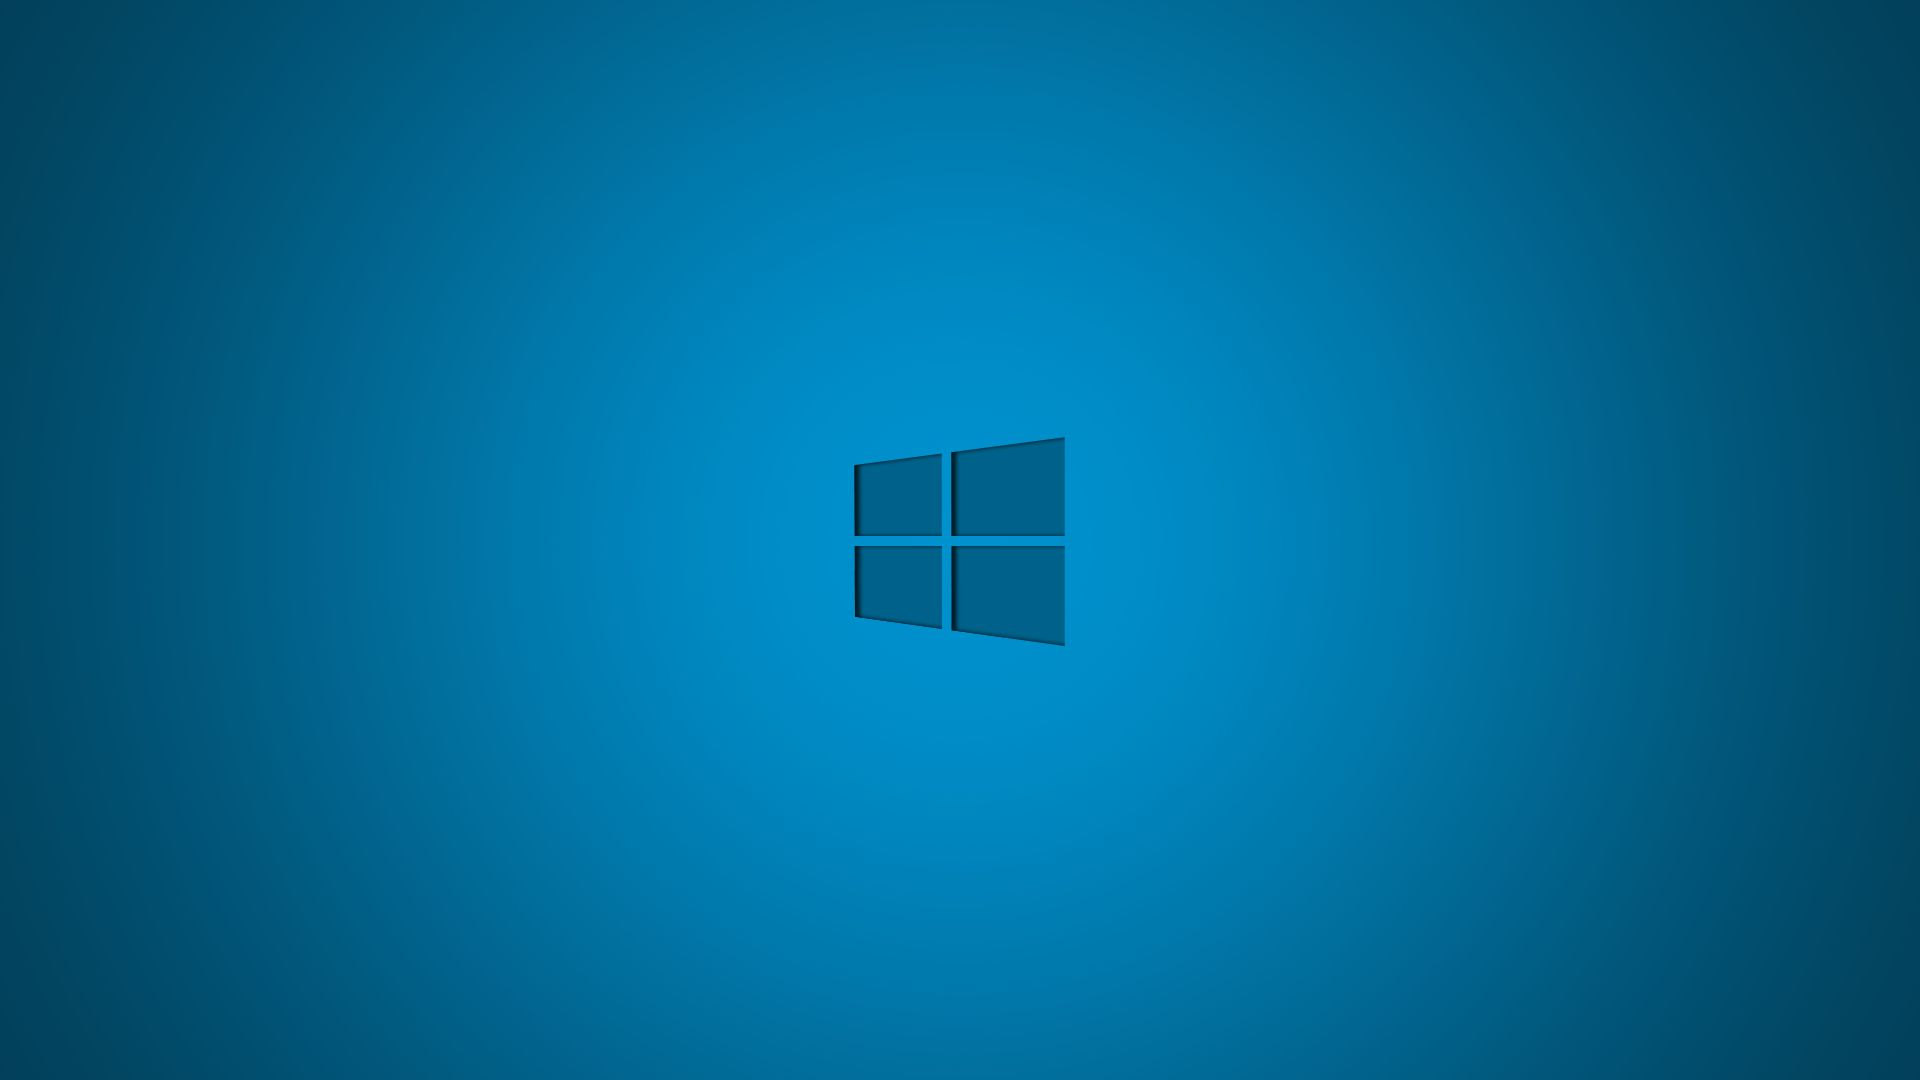 Windows Span good background